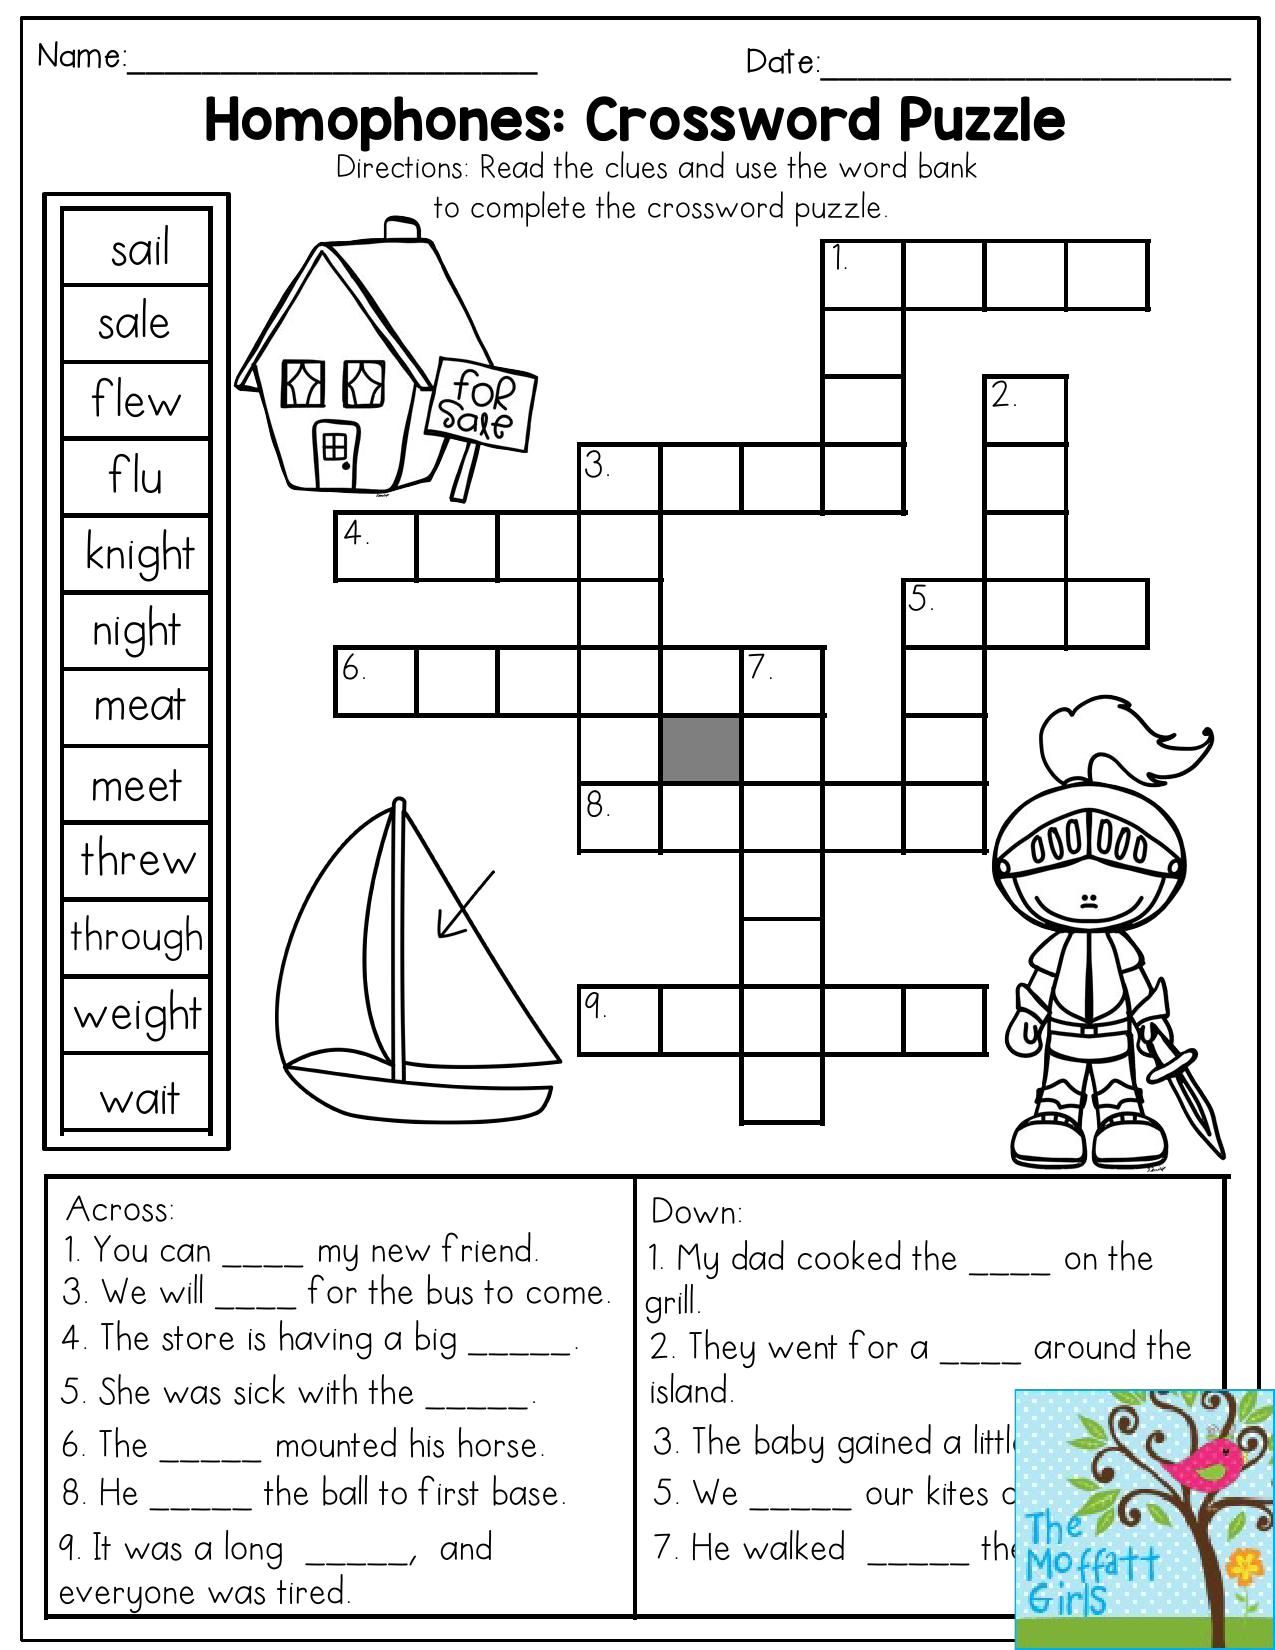 Homophones: Crossword Puzzle- Read The Clues And Use The Word Bank - Printable Crossword Puzzles For Kids With Word Bank